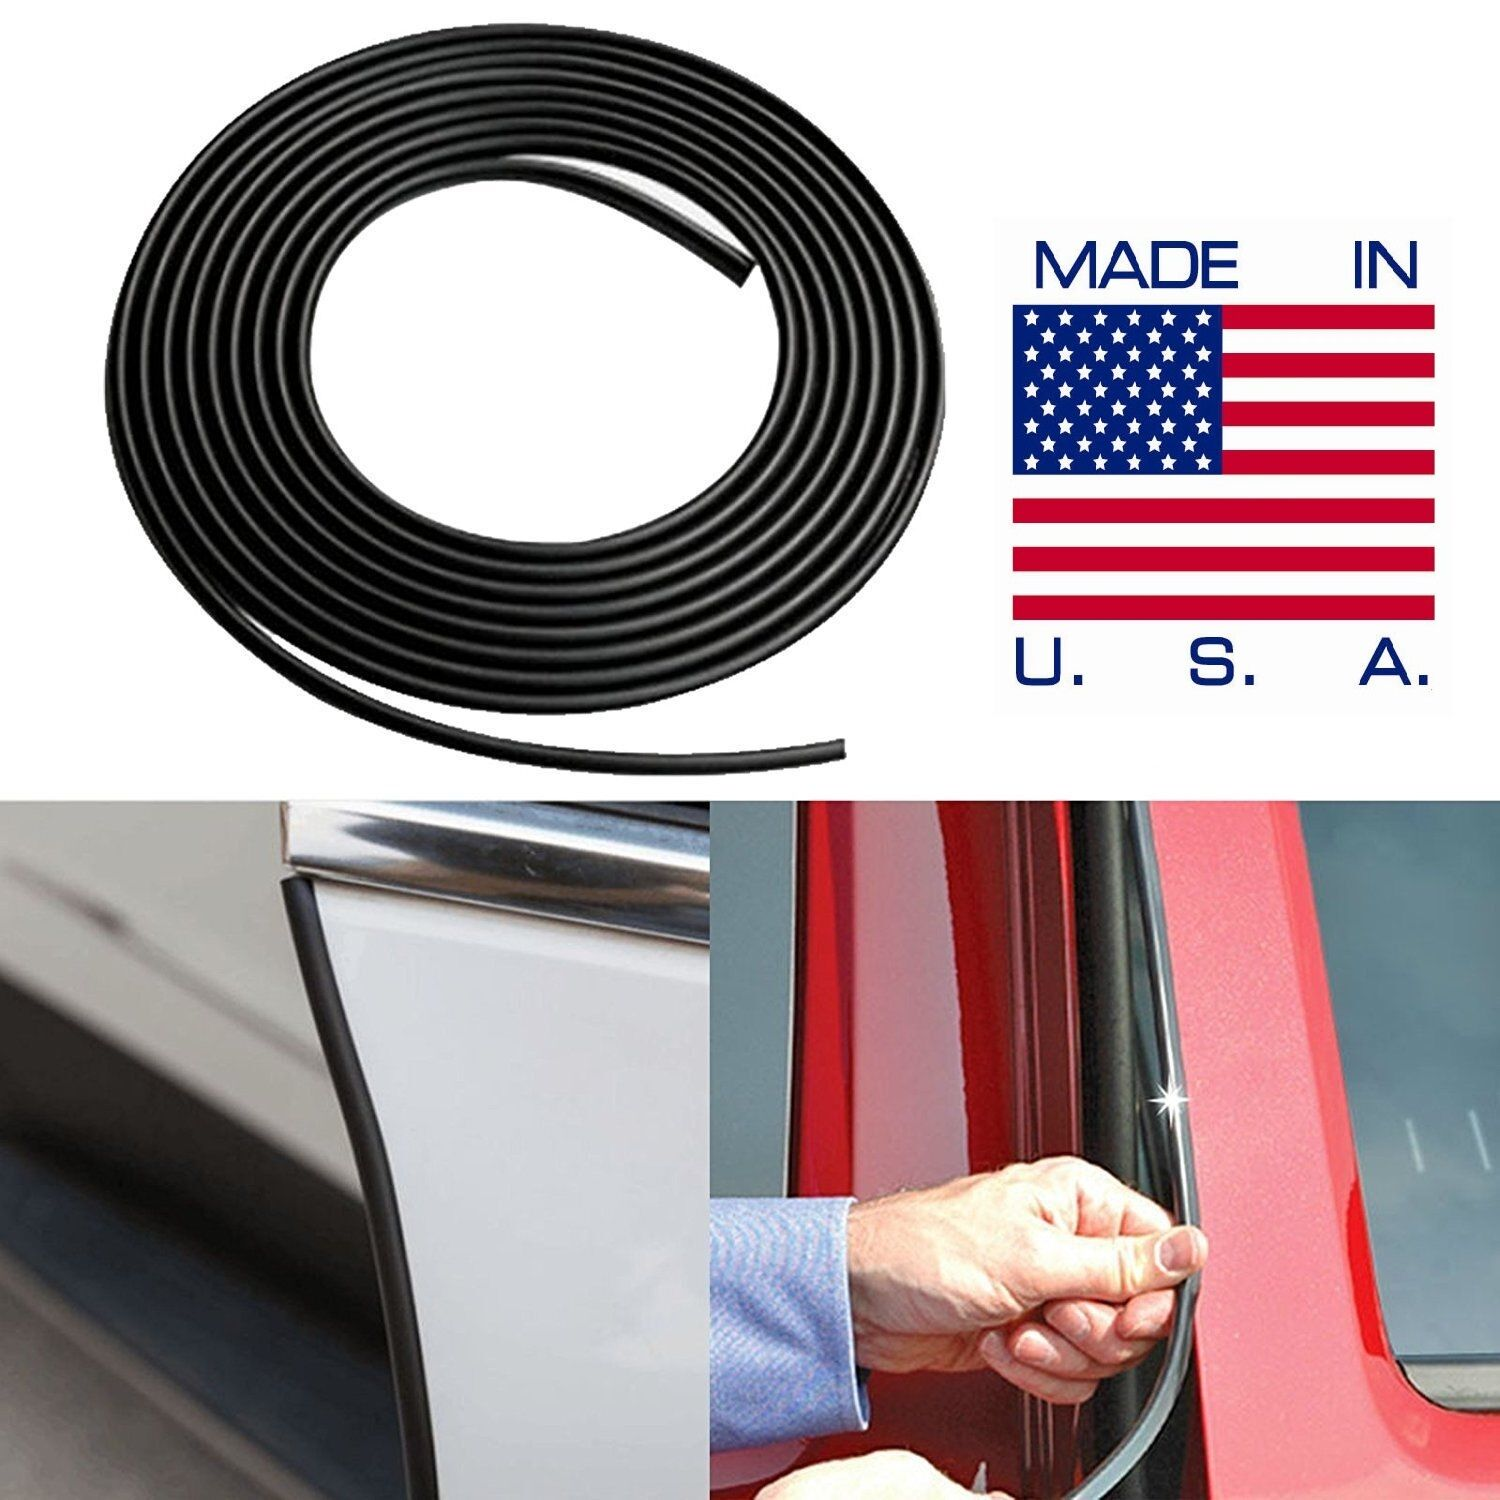 Car Parts - BLACK Door Edge Guard Trim Molding Car SUV Truck - Made in the USA FAST SHIPPING